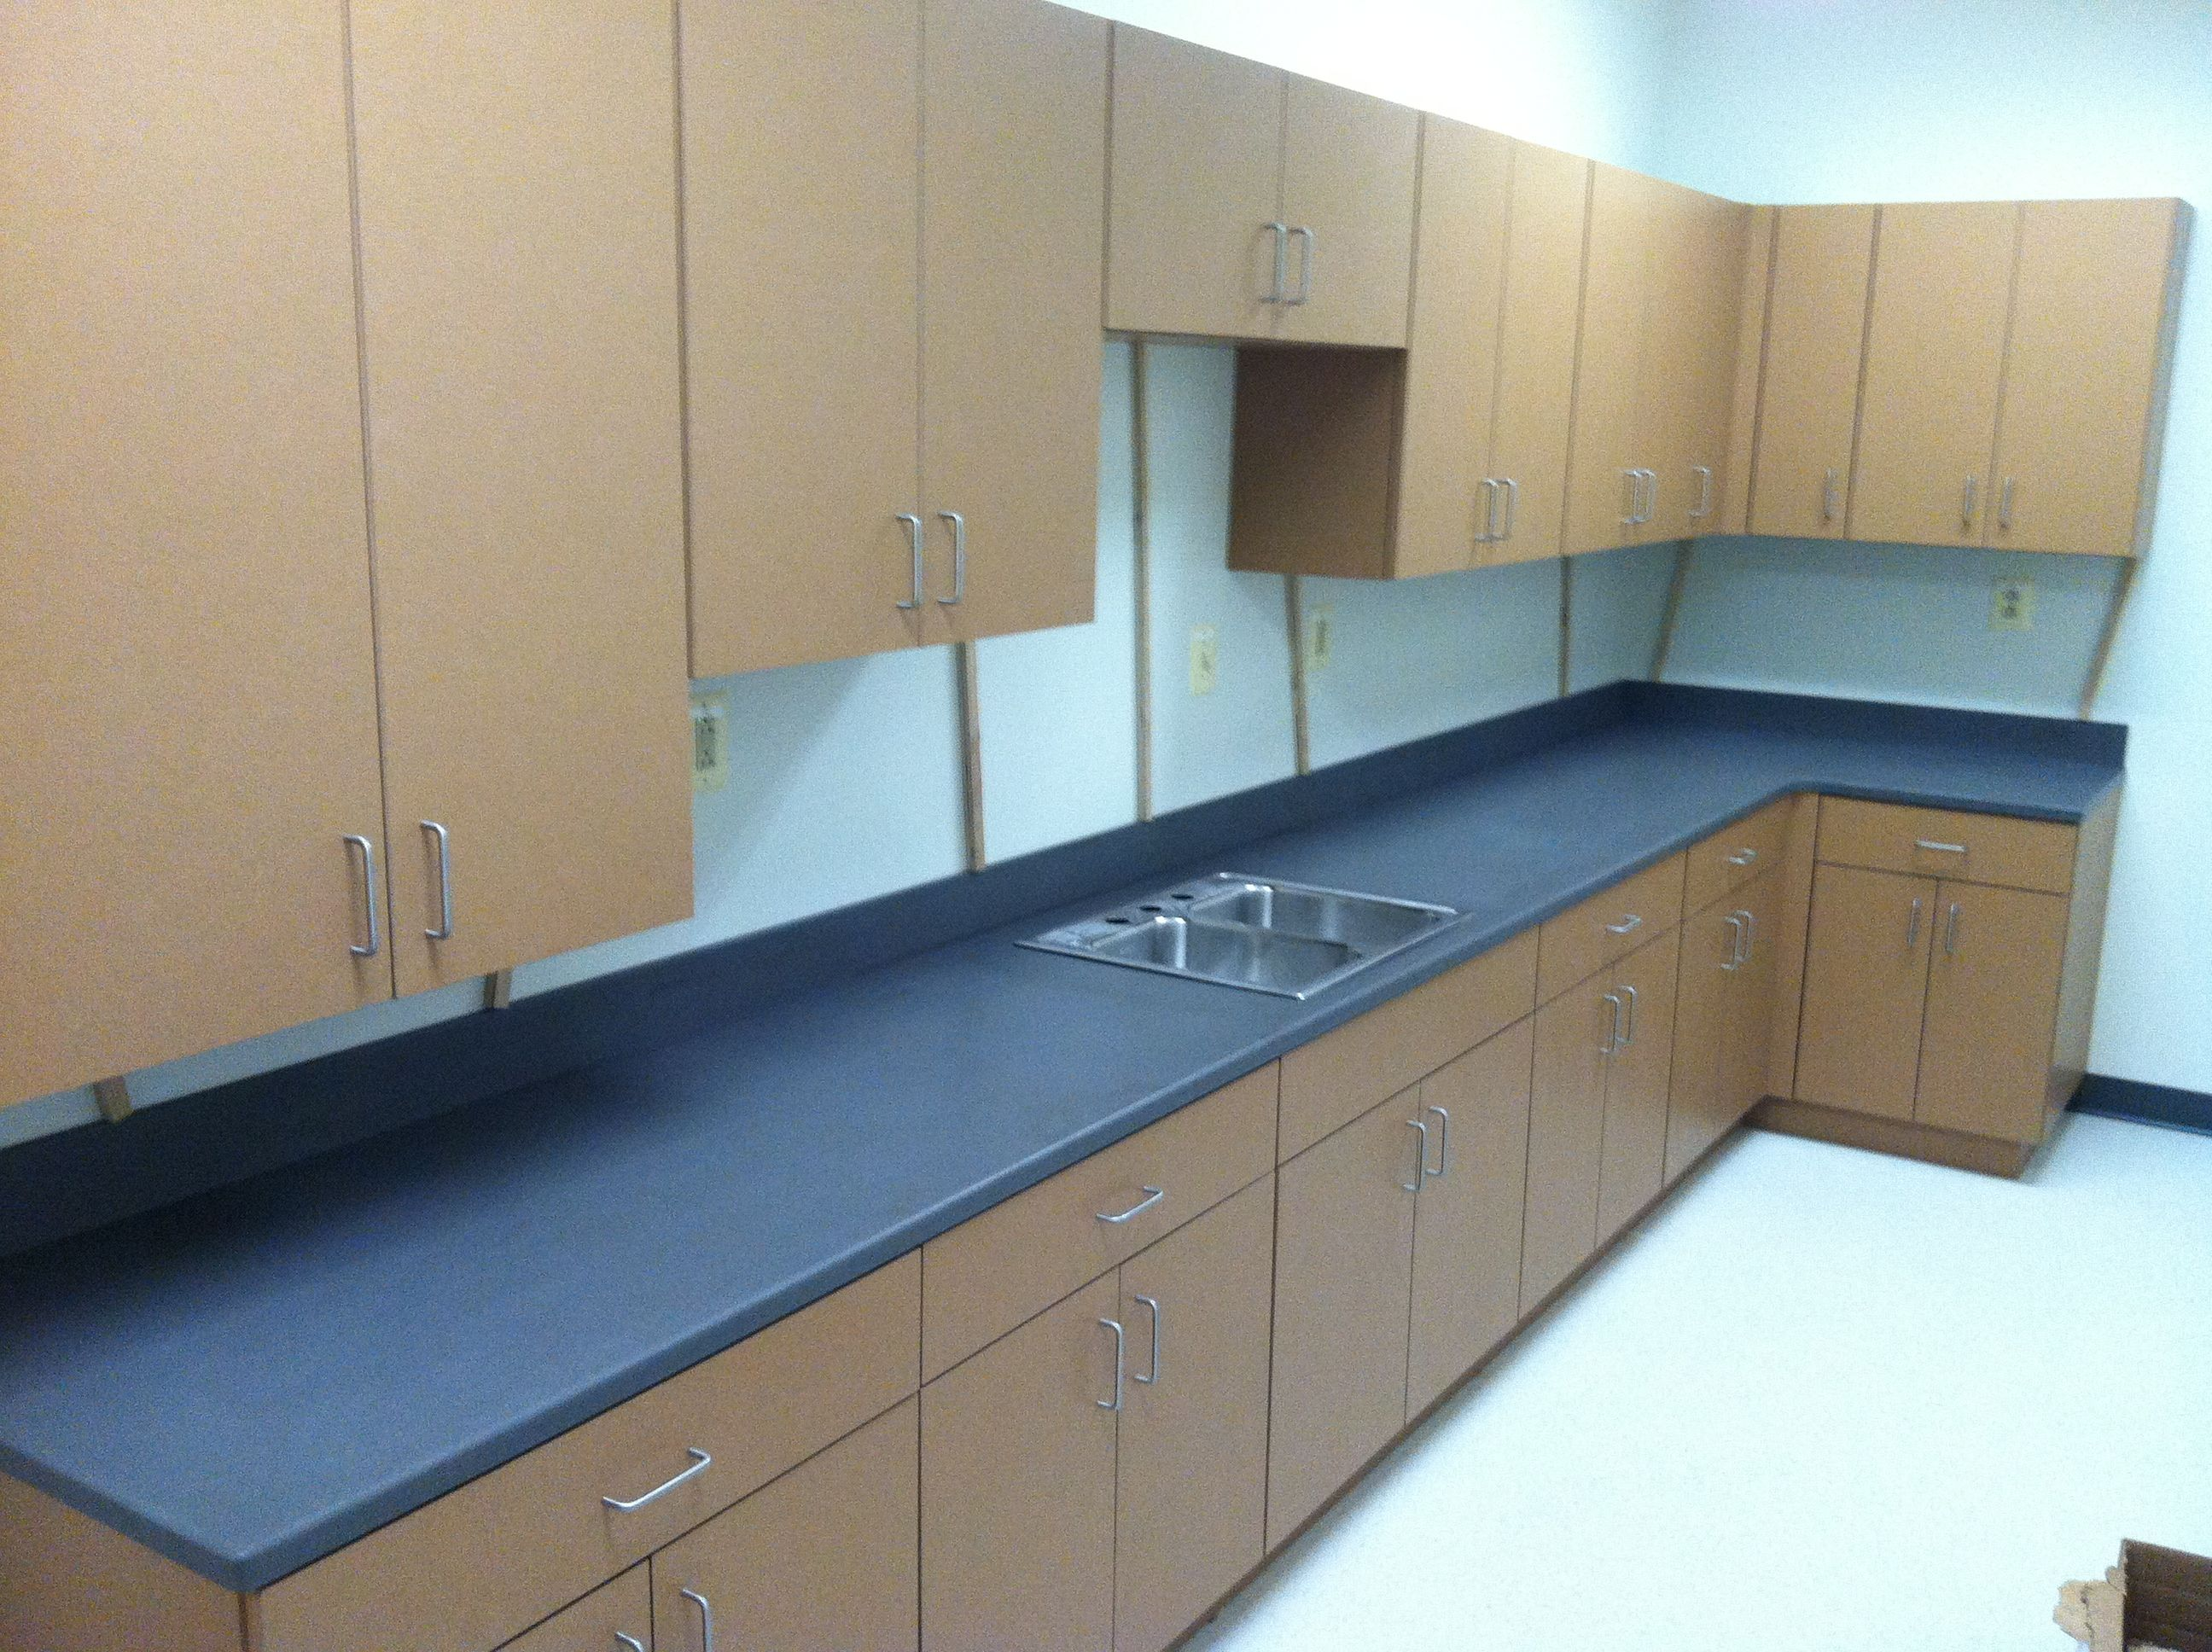 Custom Laminate Cabinets with Solid Surface Corian Countertop ...